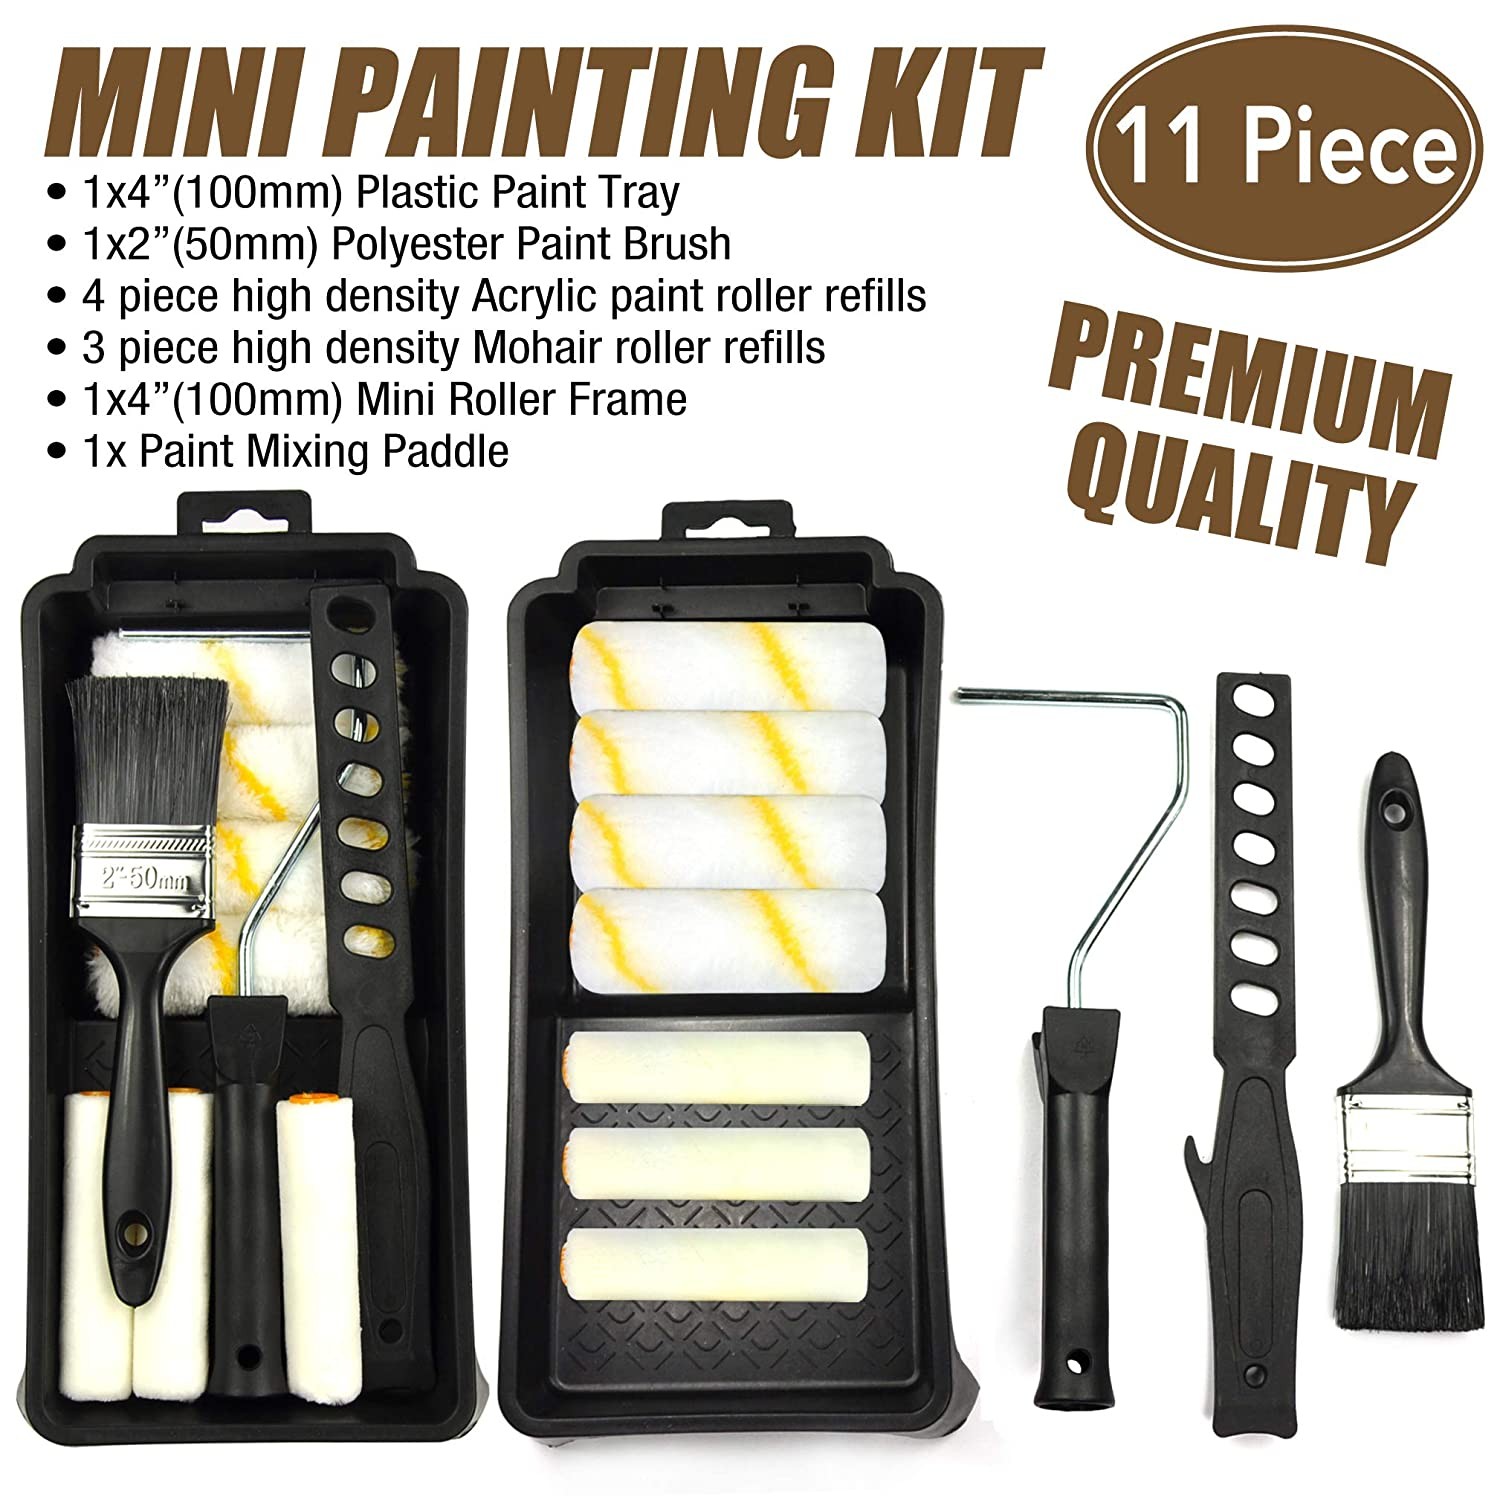 KingOrigin 11 Piece 4 Inch for Important Paints Painters Selected High Density Small Paint Roller Cover